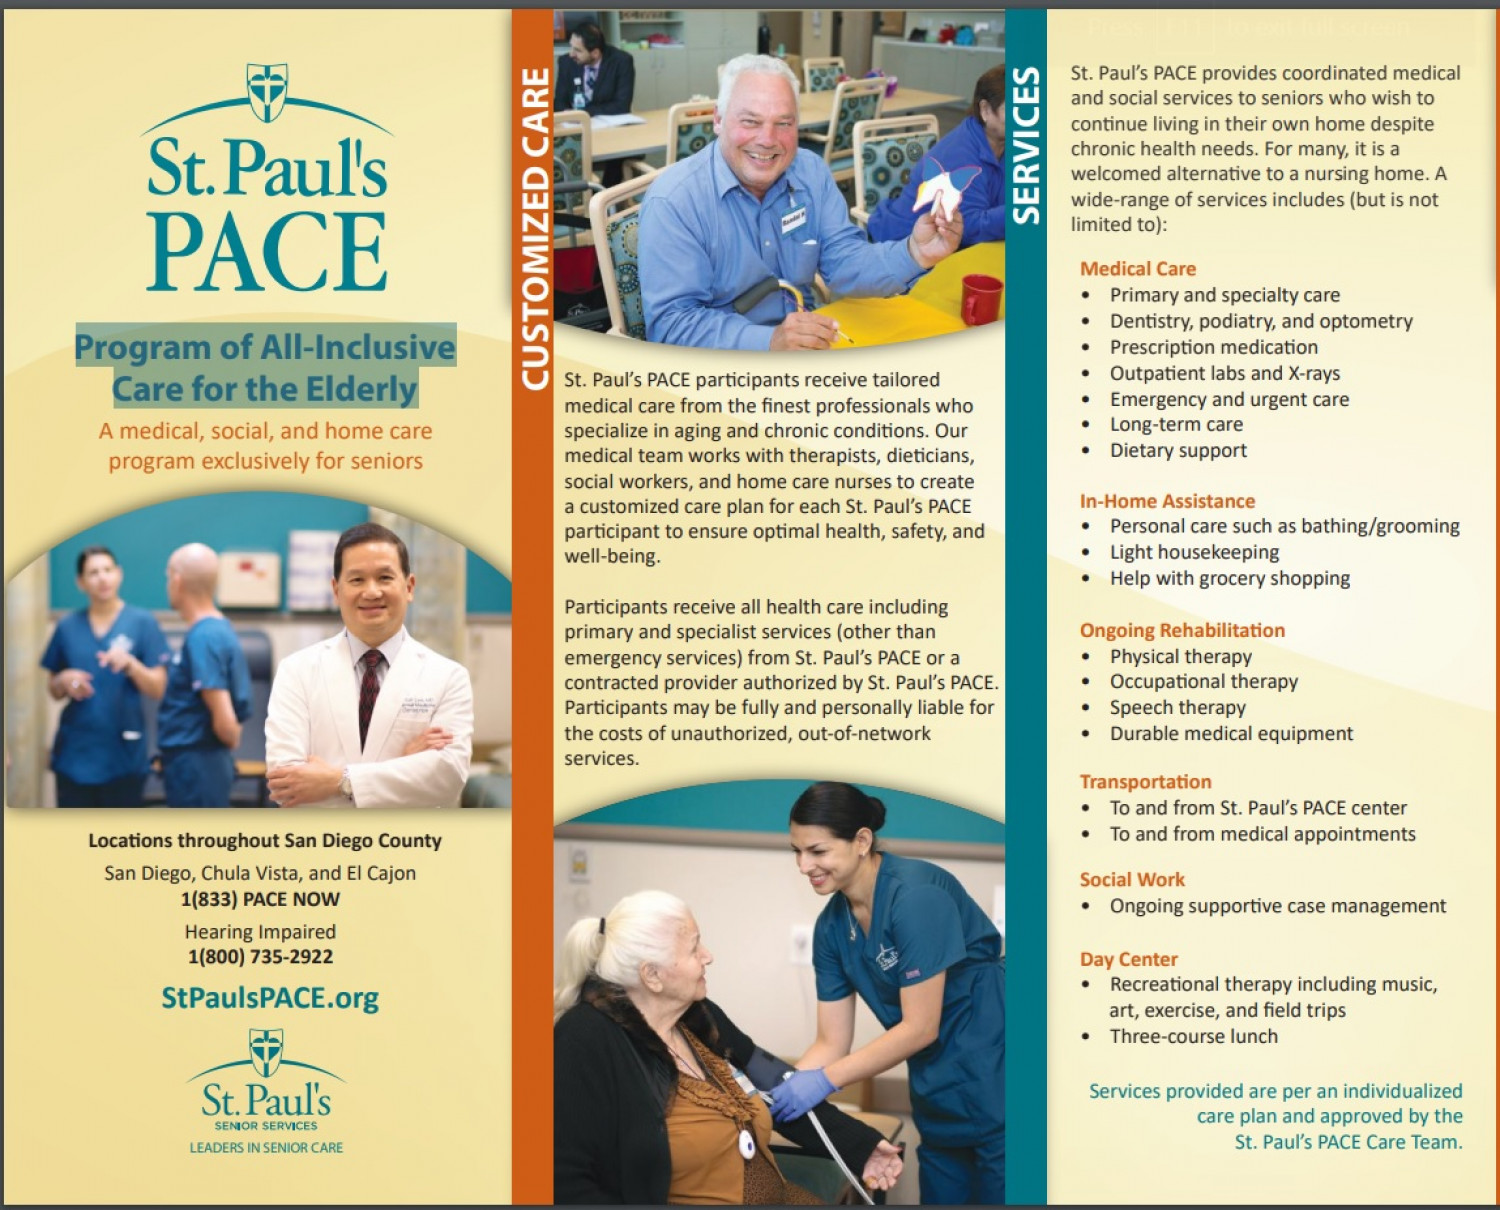 Program of All-Inclusive Care for the Elderly - St. Paul's PACE Infographic